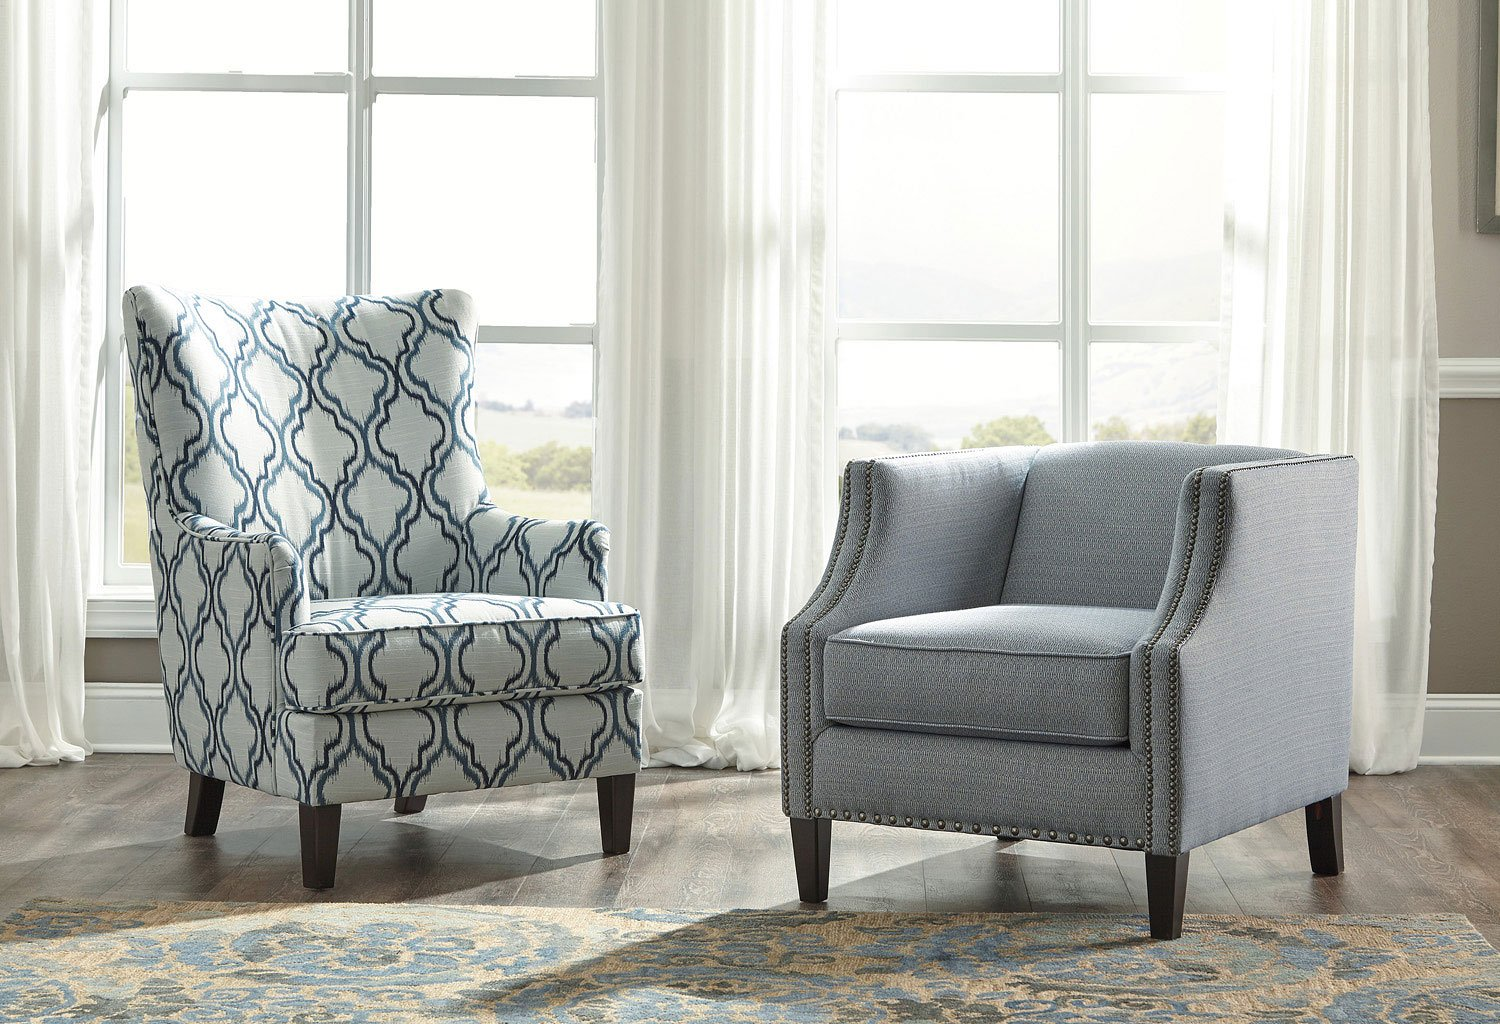 Lavernia Indigo Accent Chair By Benchcraft 1 Review S